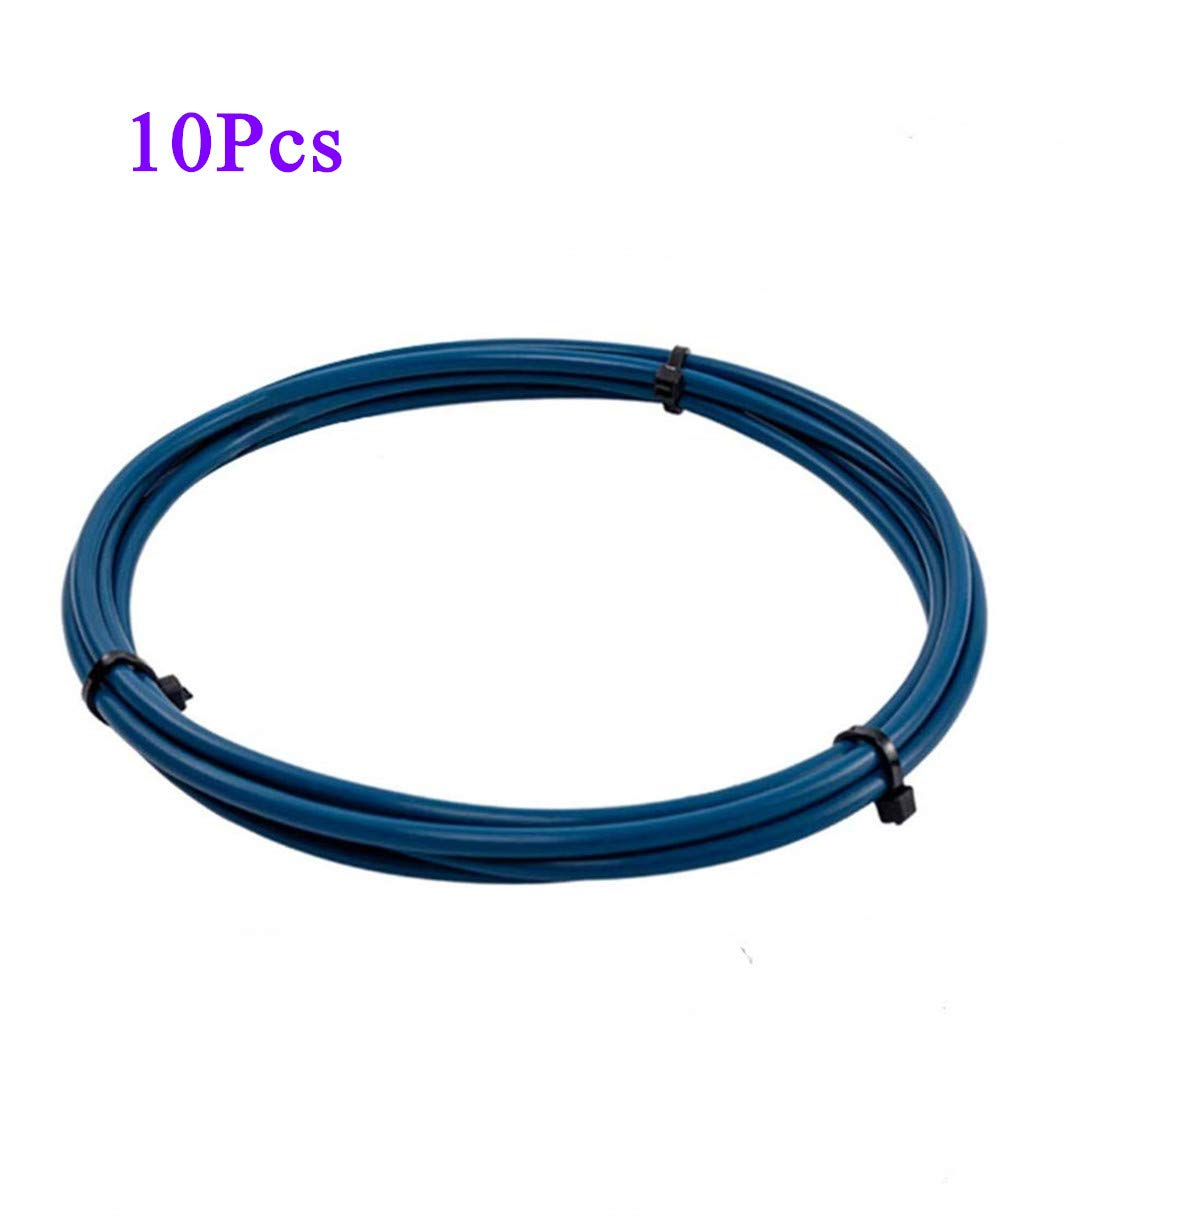 PTFE Tube Teflon Tube XS Series 1 Meter 2mm ID X 4mm OD for 1.75mm Filament Capricorn Premium Tubing Compatible with All PLA ABS 3D Printer (blue-10PCS)